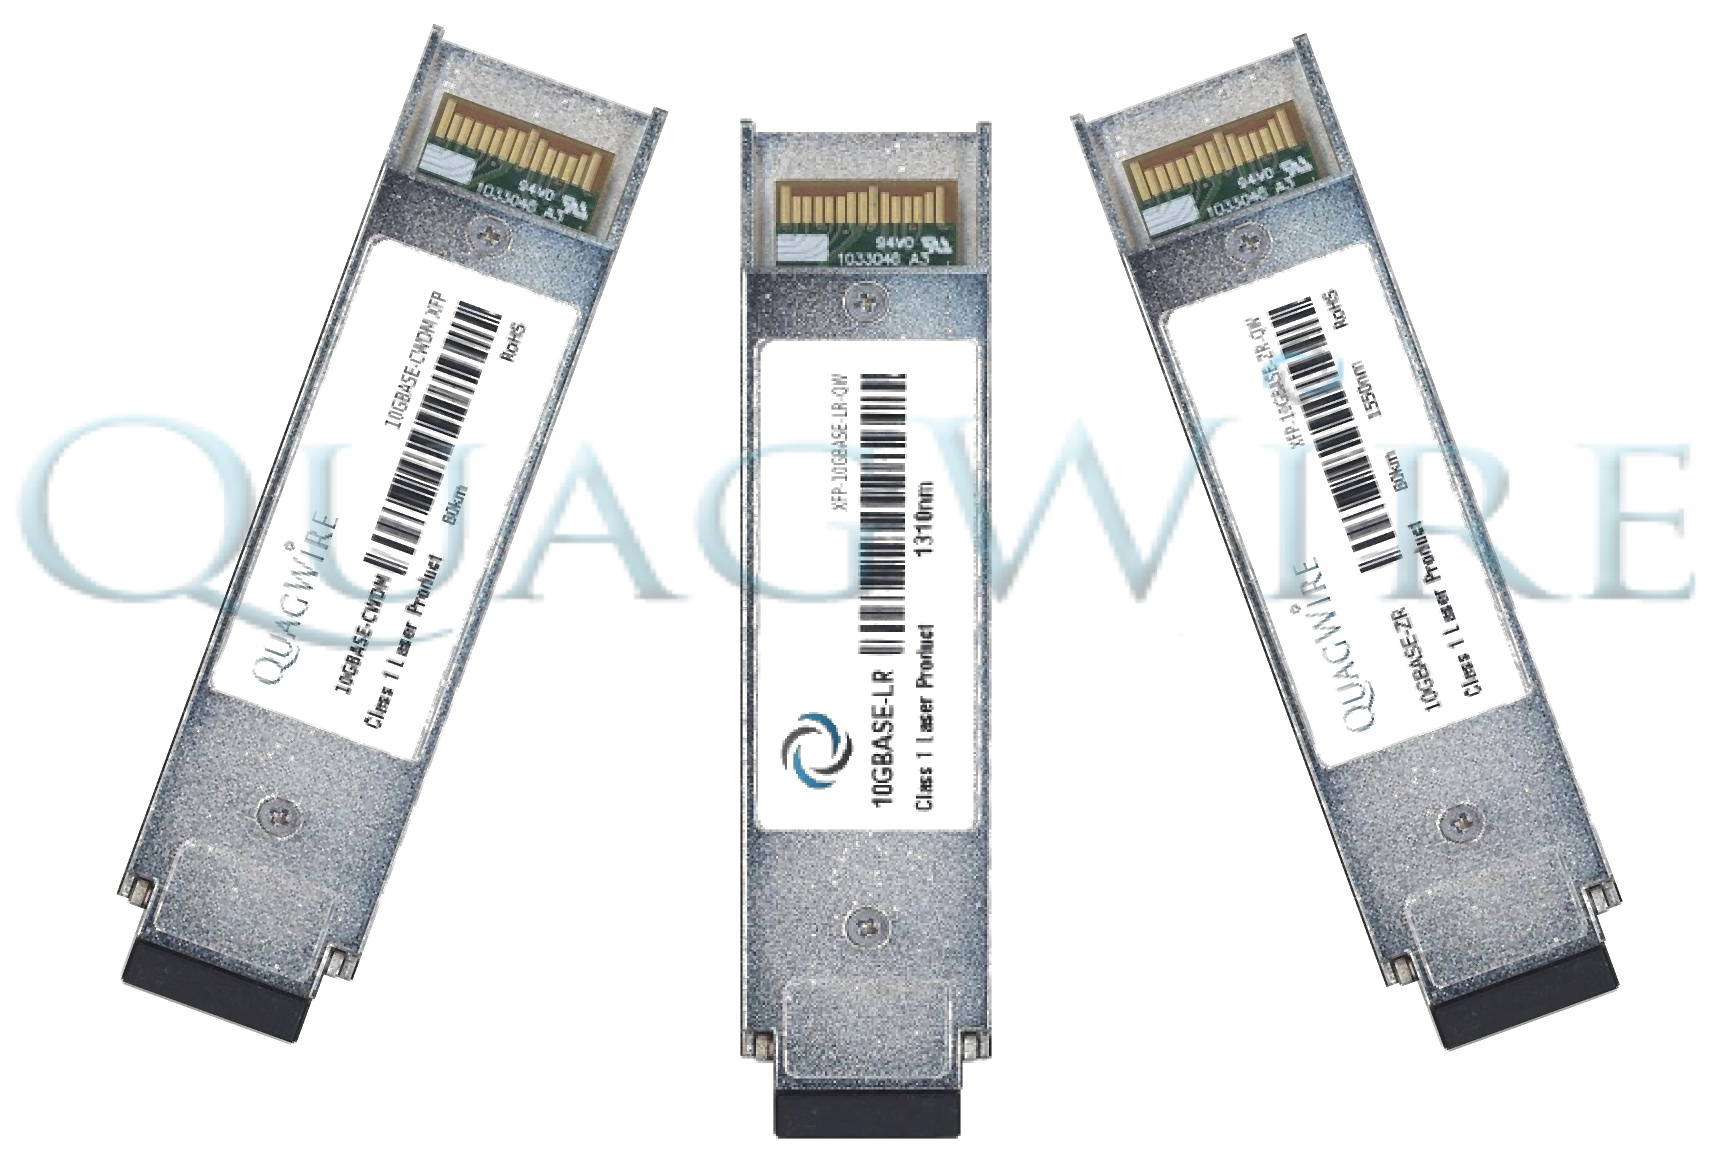 XFP-10G-SR Alcatel 10GBASE-SR Multimode 300m 850nm 10GB XFP Transceiver XFP-10G-SR